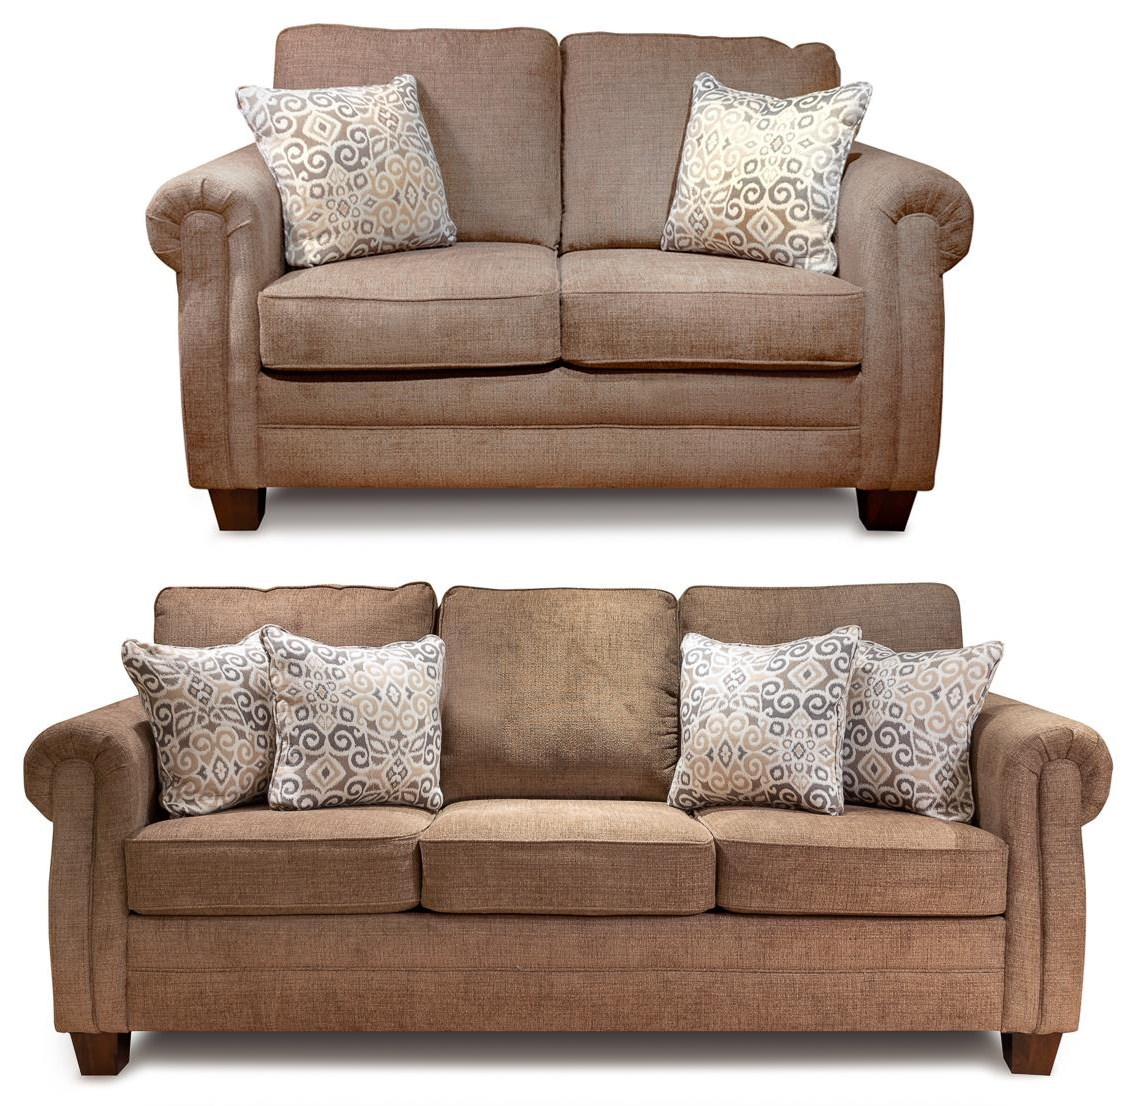 Landers 2PC Sofa & Loveseat Set at Rotmans